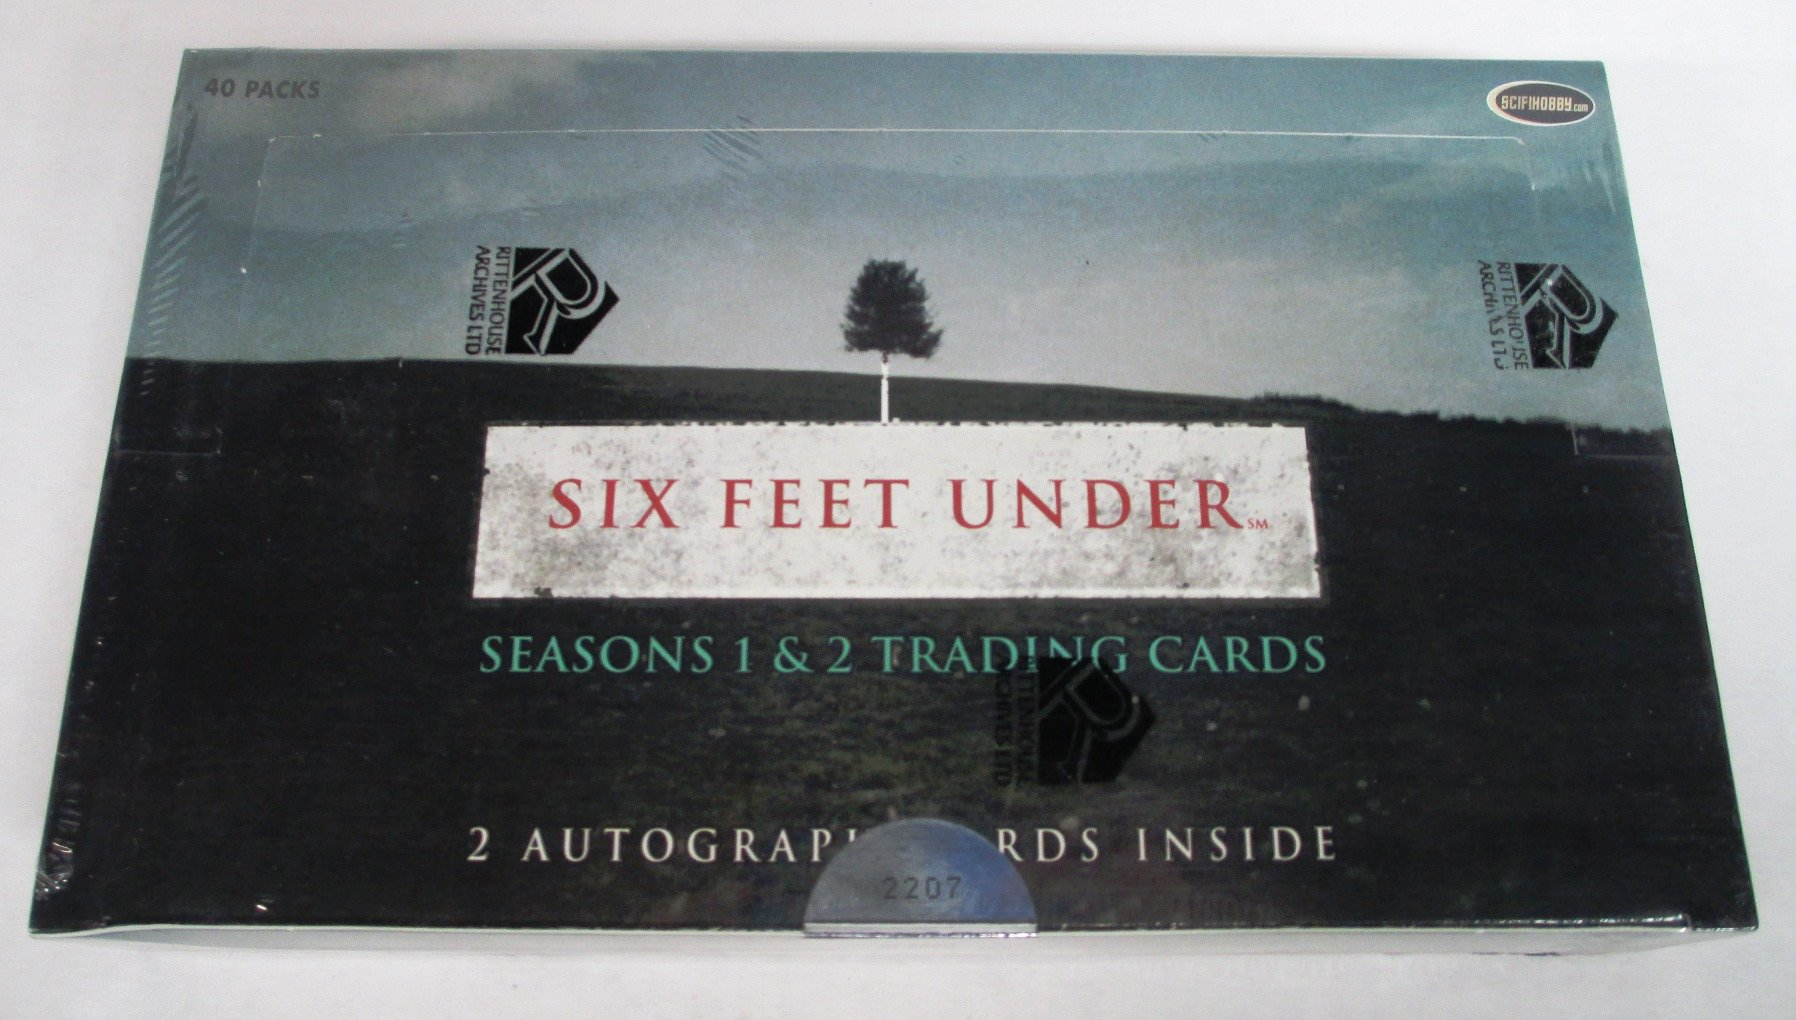 Six Feet Under Seasons 1 & 2 Trading Cards Box Set with 2 Autograph Cards